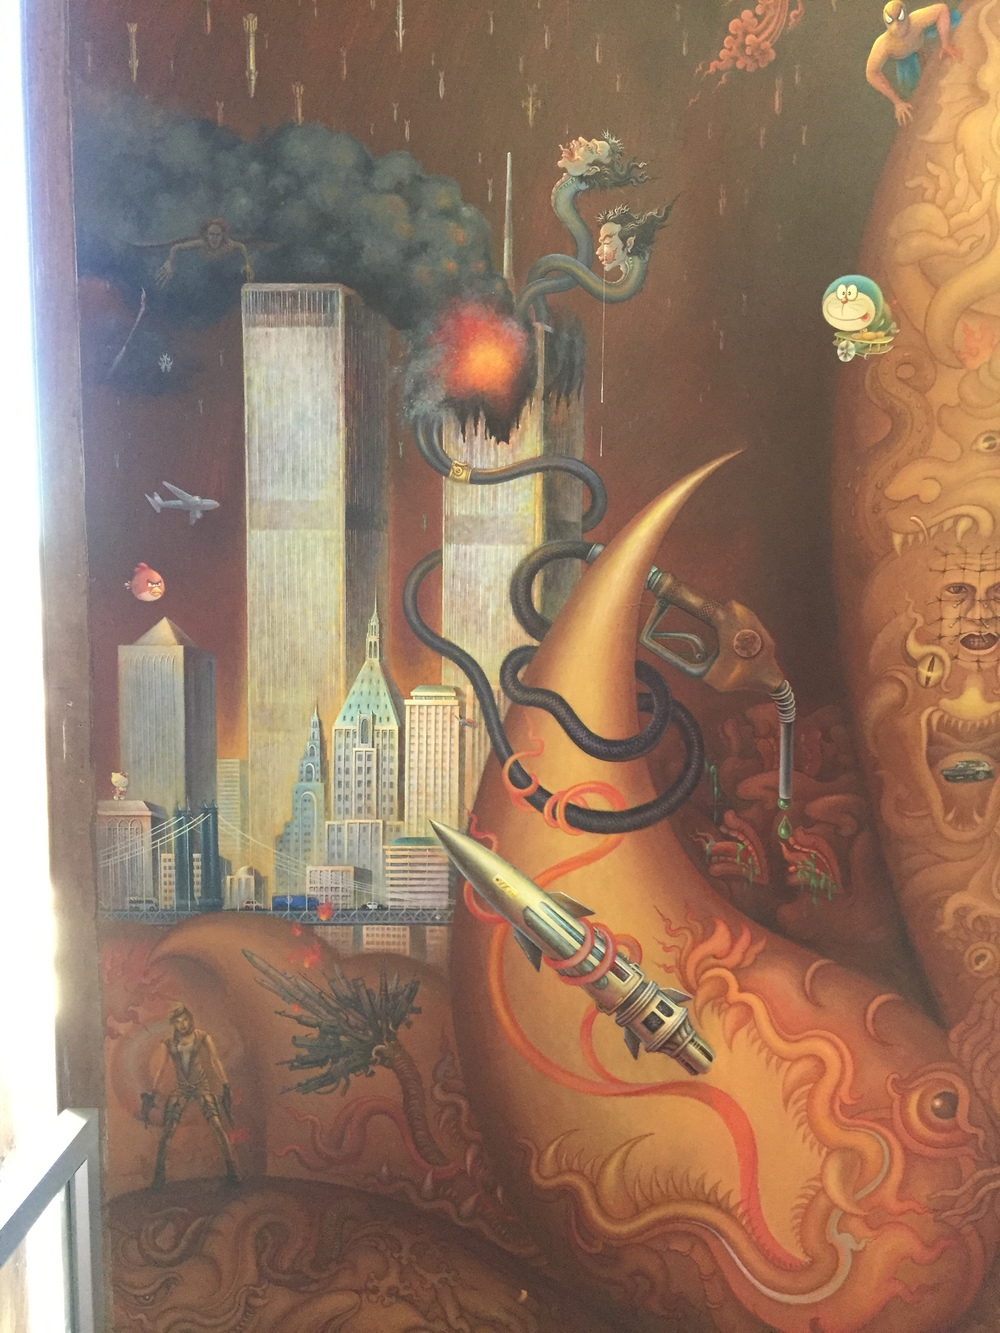 A small fraction of the images on the wall depicting good vs. evil. Shown here are the Twin Towers, gasoline, Spiderman, and others.